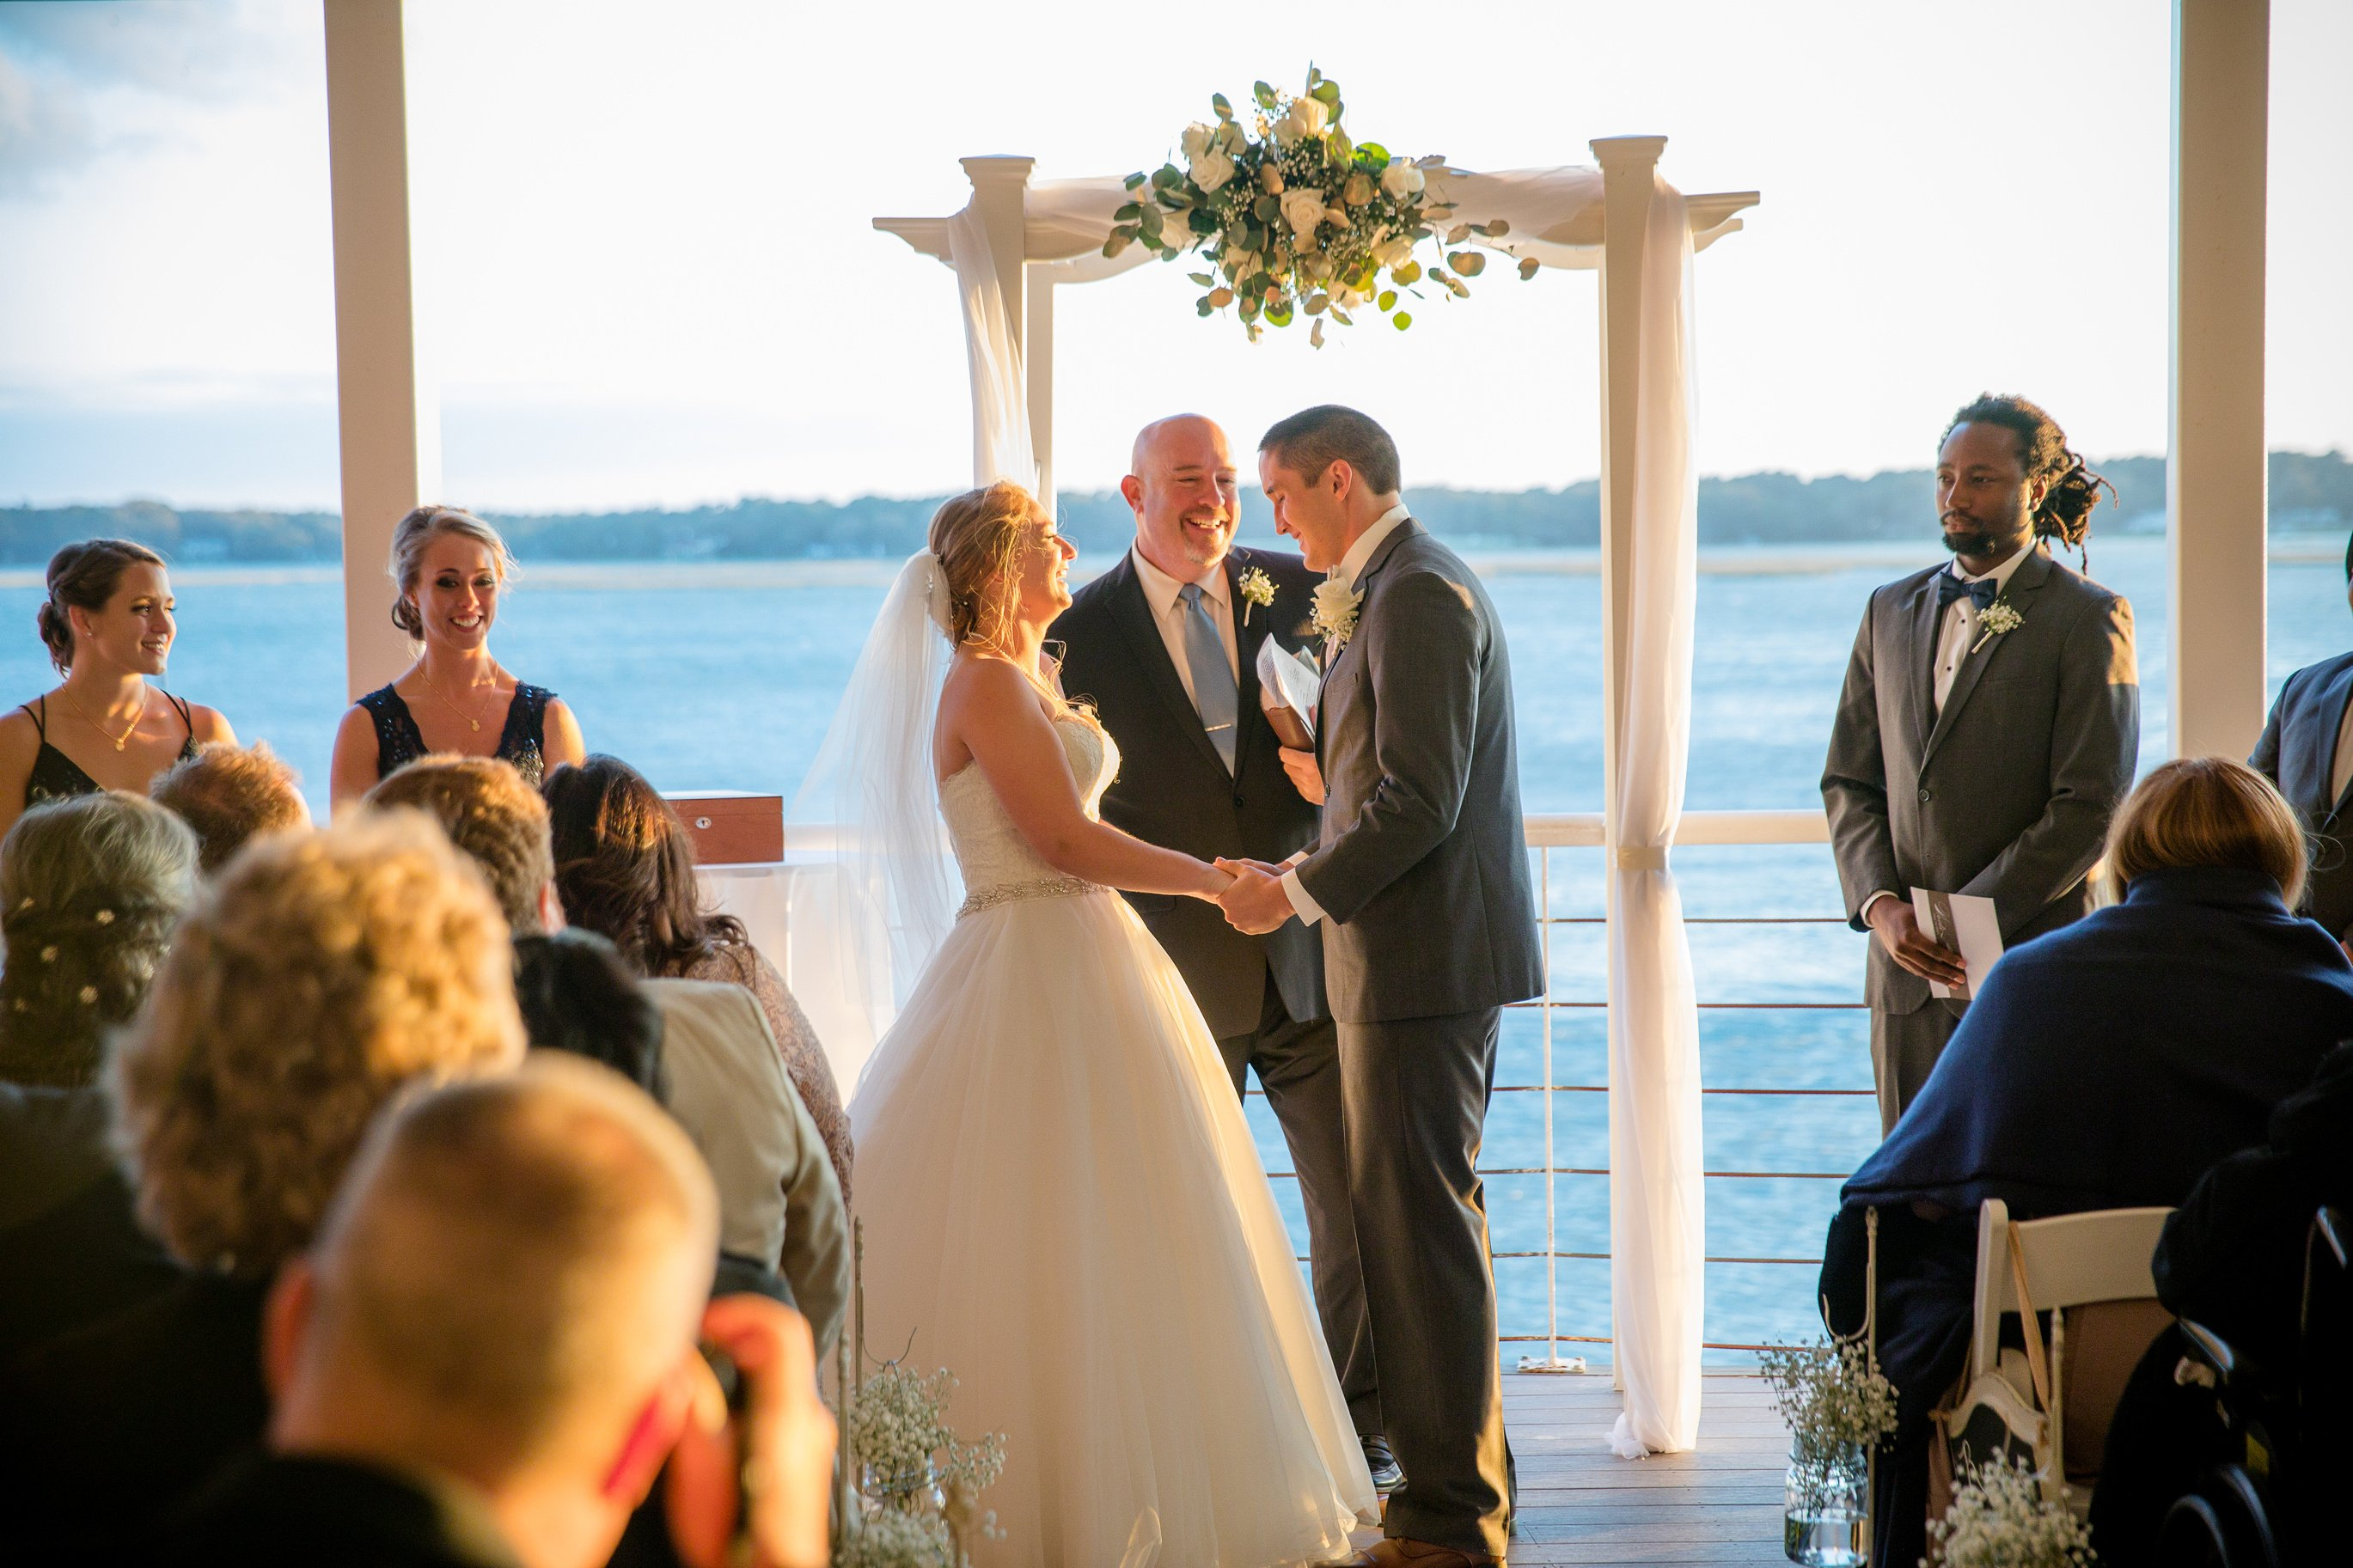 Waterfront-Wedding-Processional-Virginia-Beach-43.jpg